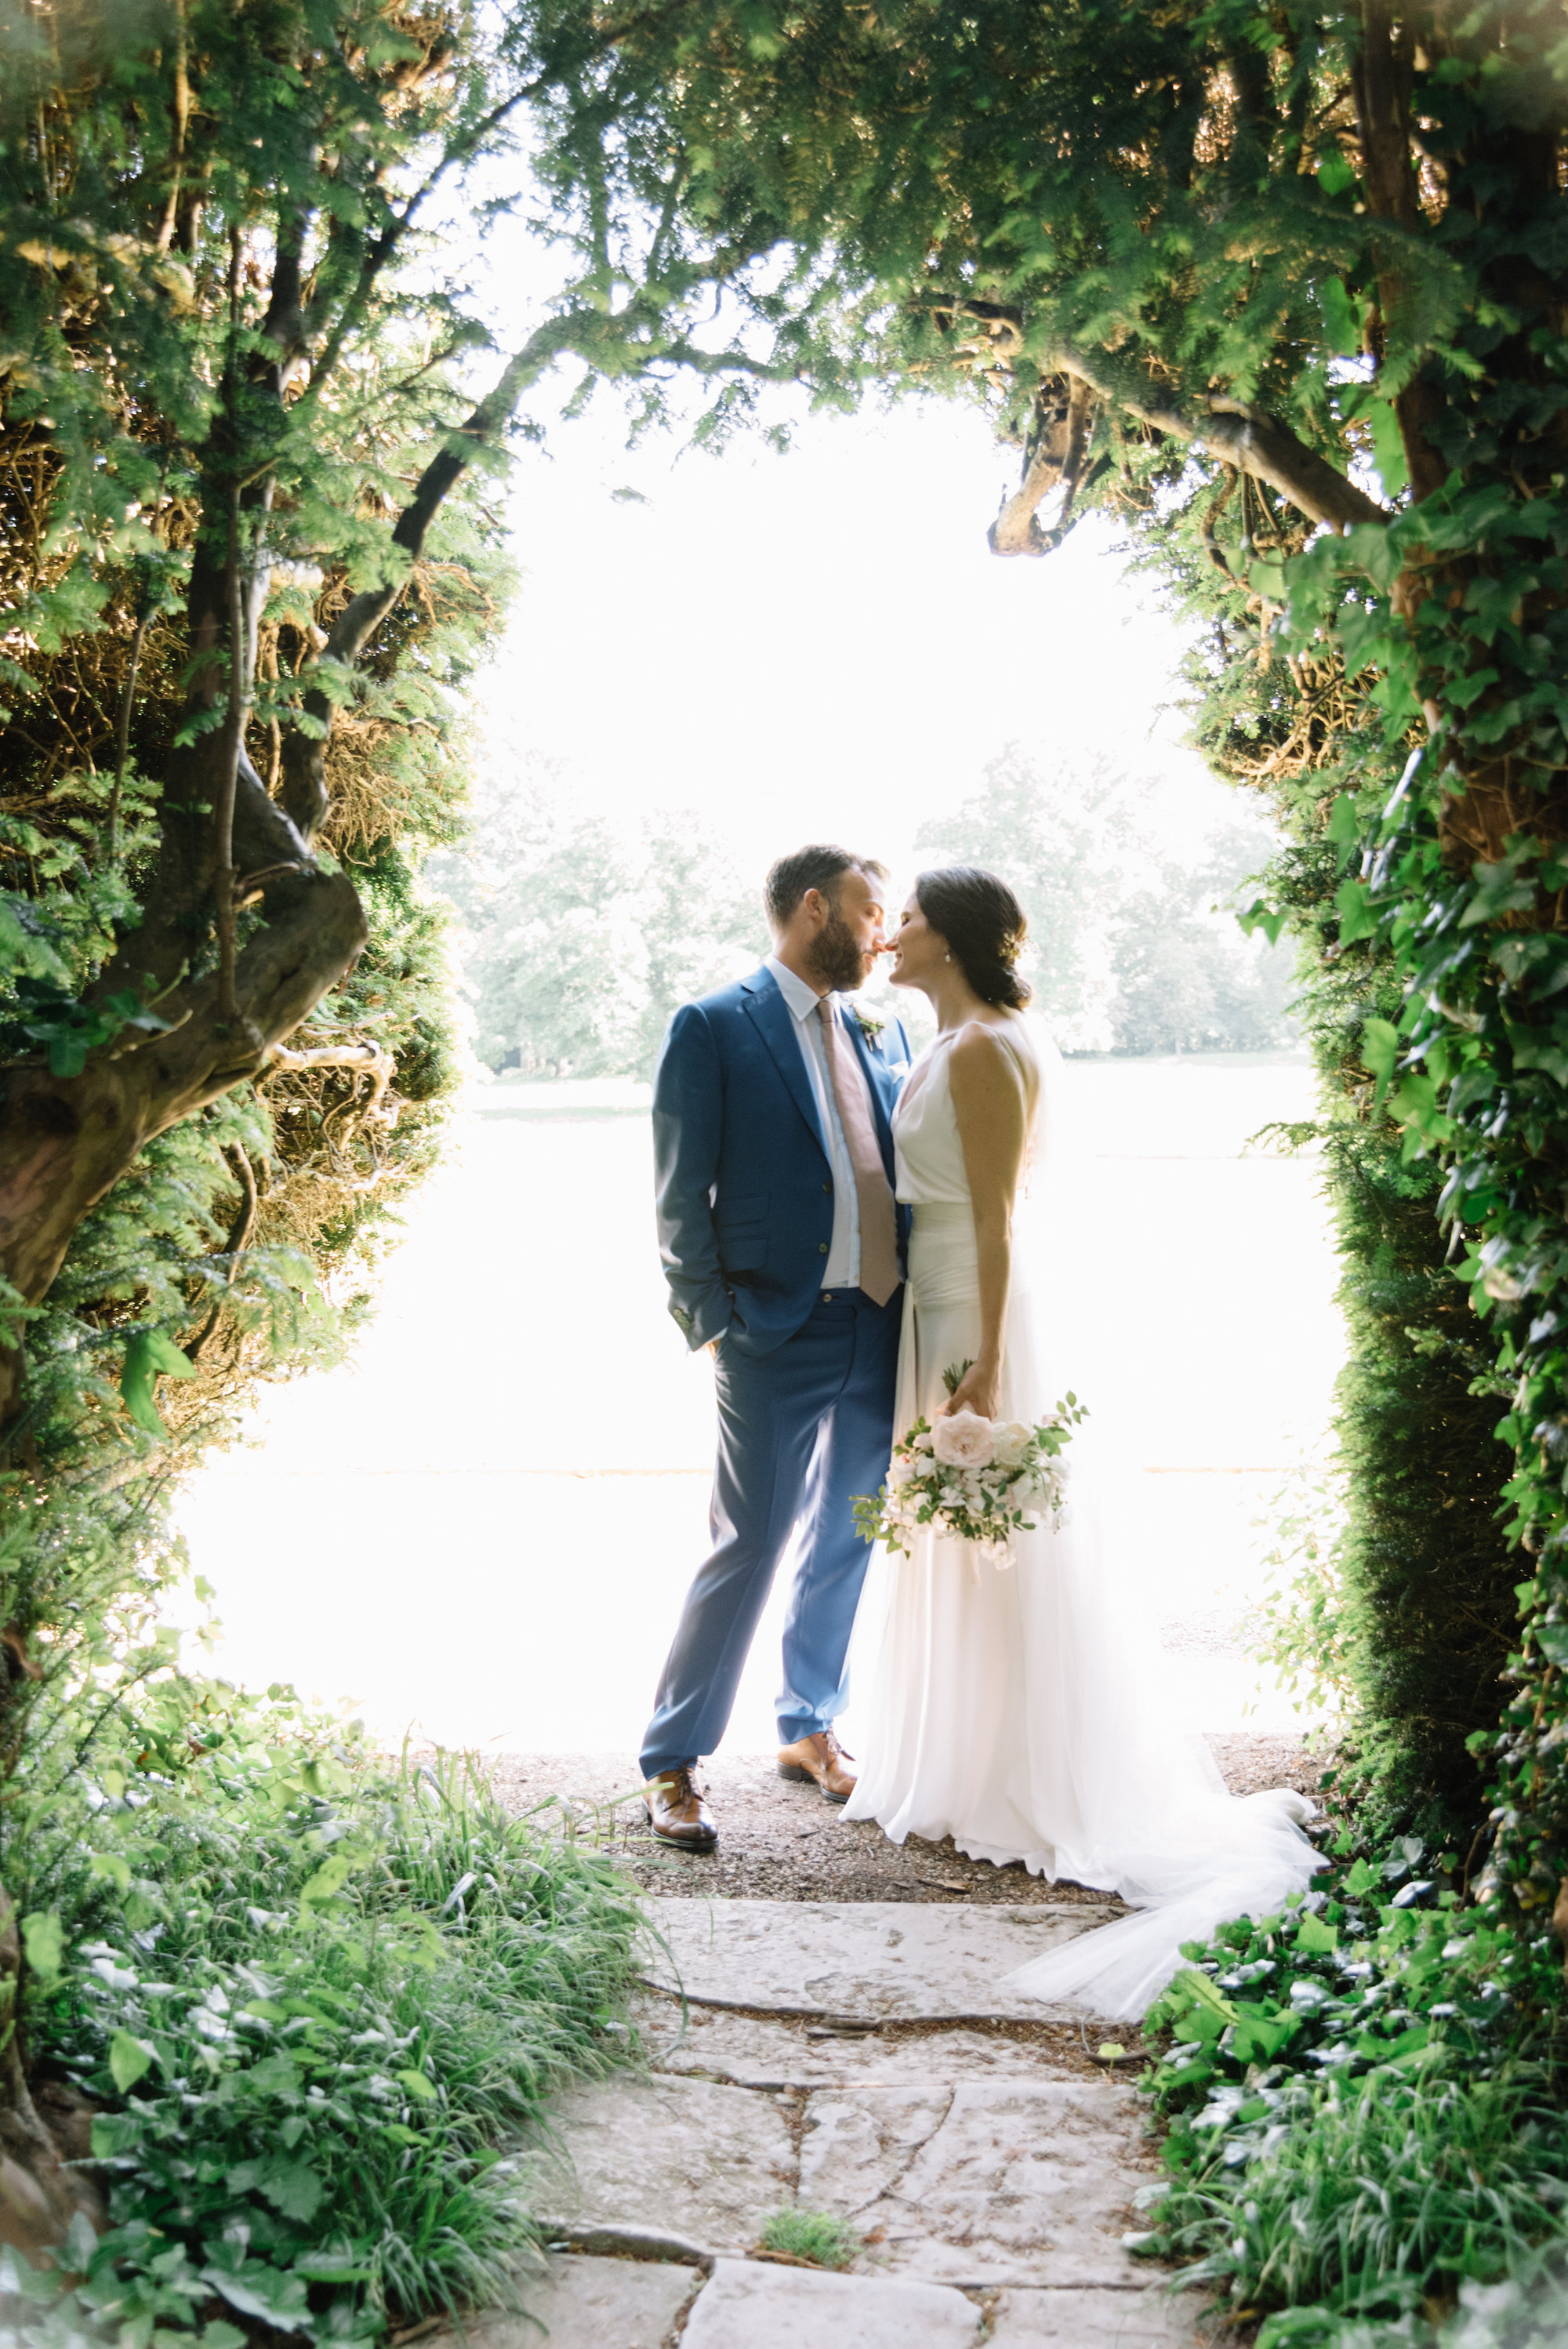 Luxury Wedding Planner UK | Jennifer & Timothy's English Country Manor Wedding | Soft Pink Pale Blue White and Silver Toned Green Neutral Tones American Bride North Cadbury Court | Nicole Colwell Photography  0115.jpg